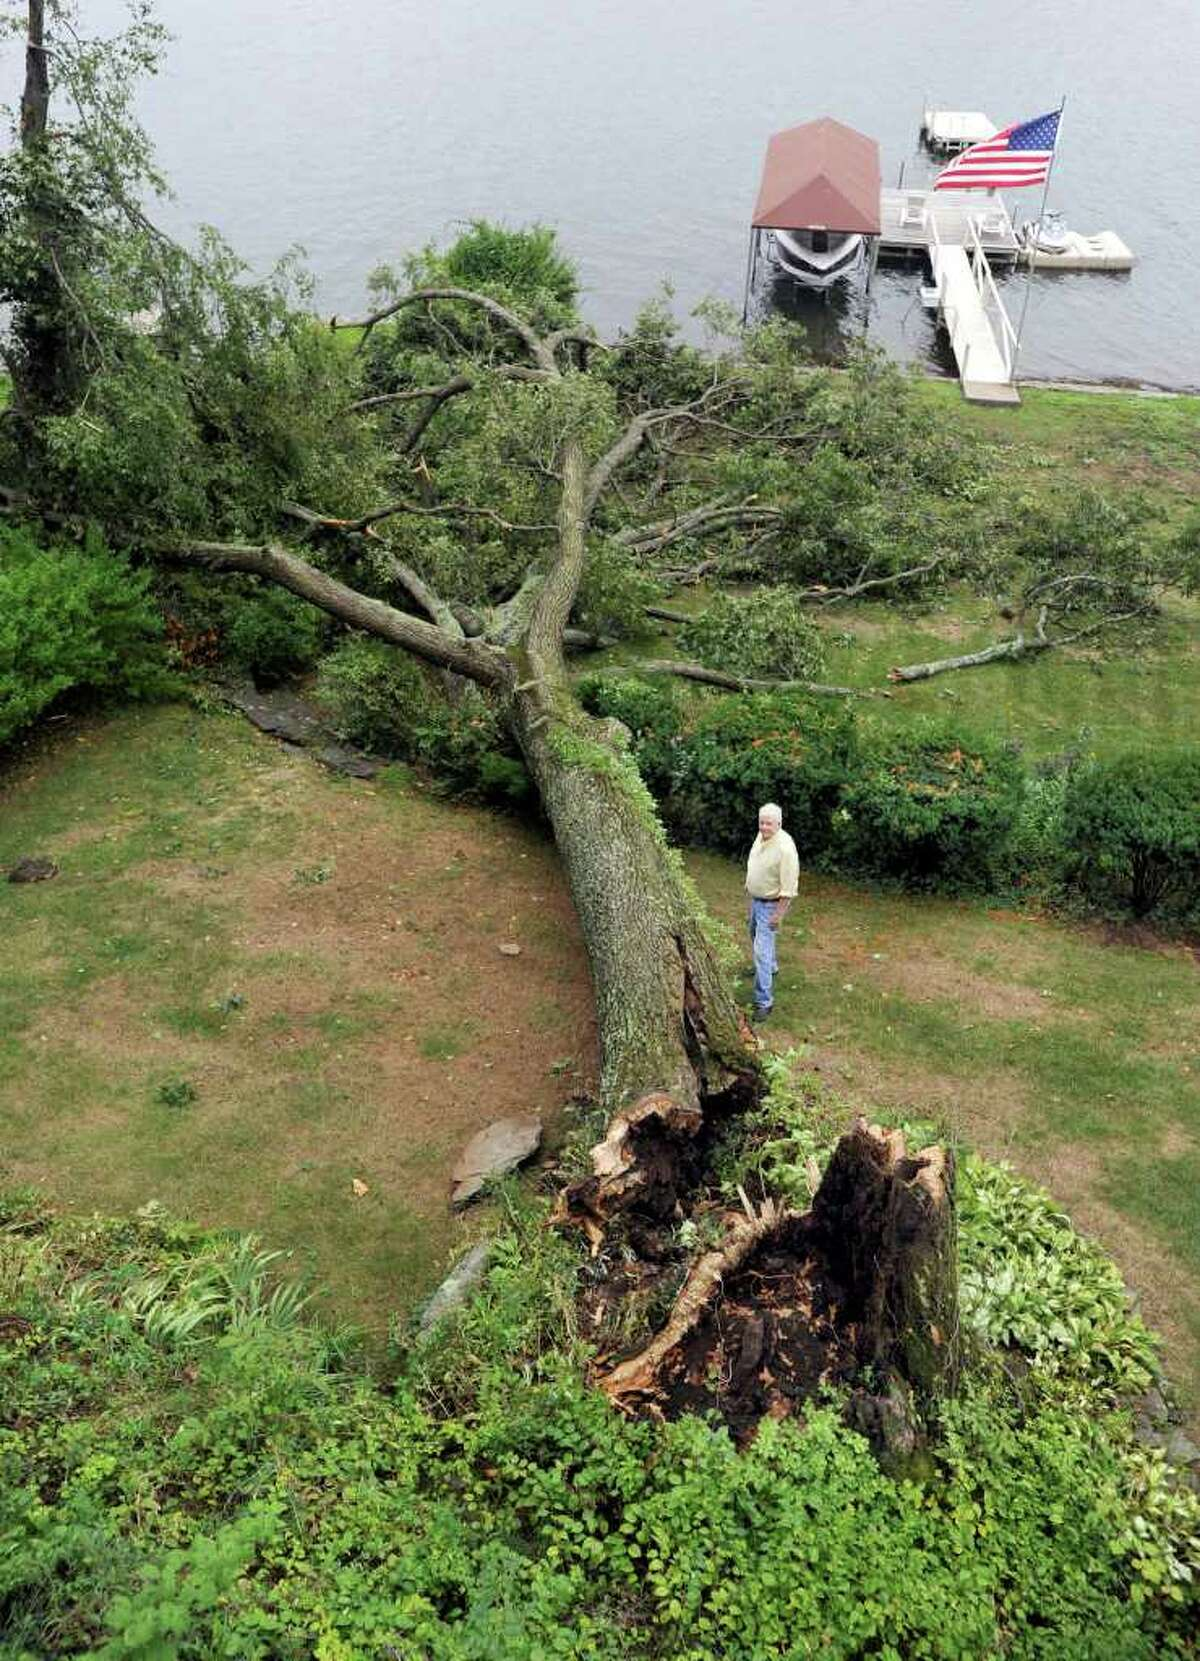 Kevin Carolan left his Danbury home about 6:30 p.m. Sunday to pick up some pizza, and soon got a call from his neighbor telling him the huge oak tree in his back yard had come crashing down. Sunday's heavy rains and the age of the tree - about 100 years old, were probably contributing factors. Luckily, the fallen tree missed the Carolan's boat and dock at Pleasant Acres.